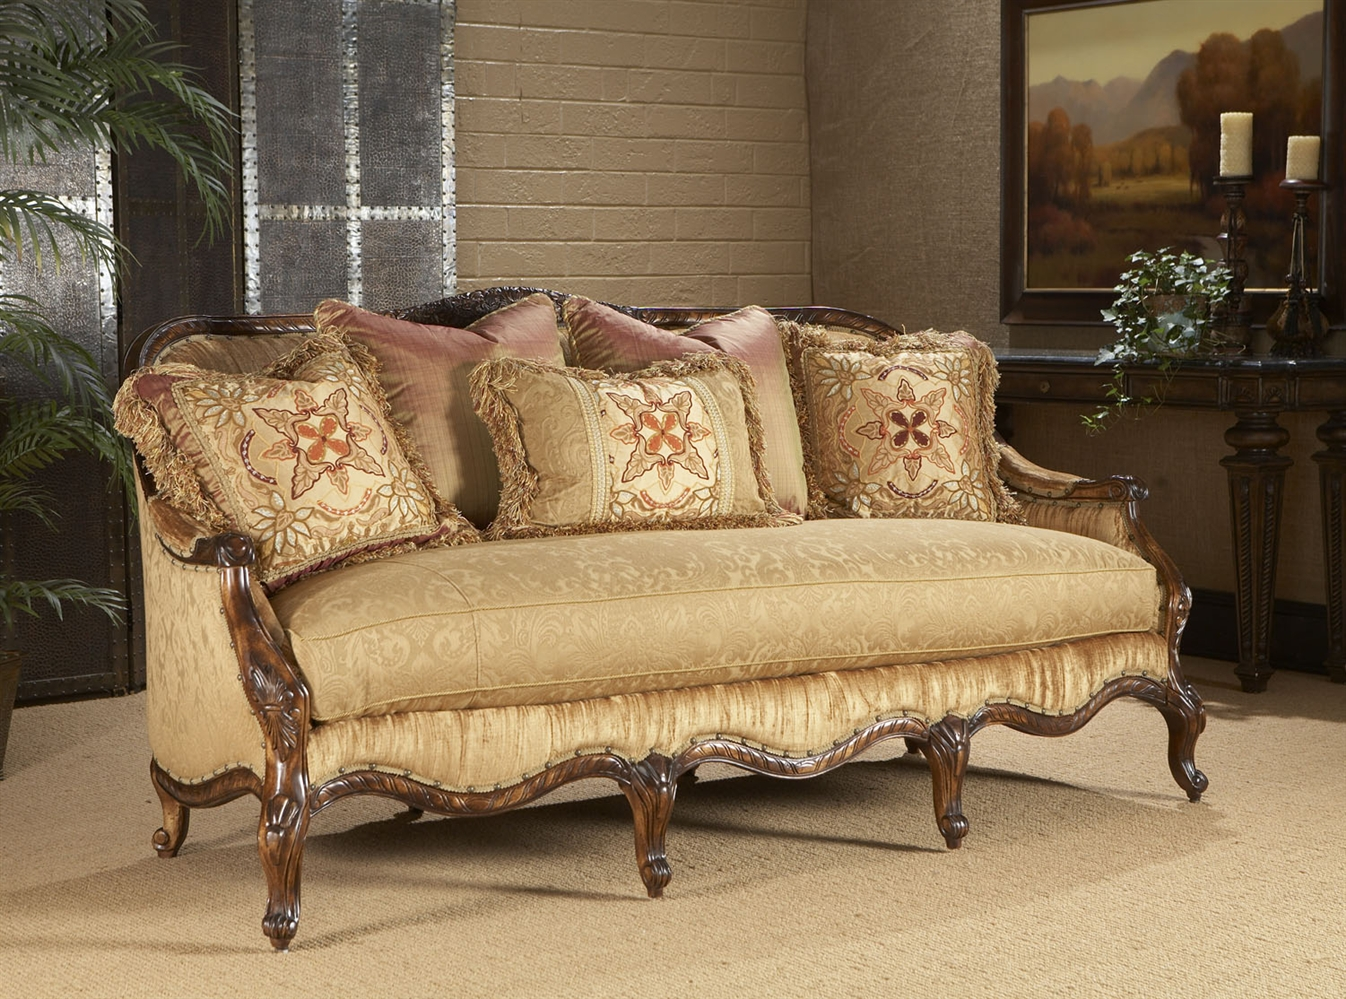 Luxury Leather U0026 Upholstered Furniture Fancy Parlor Sofa